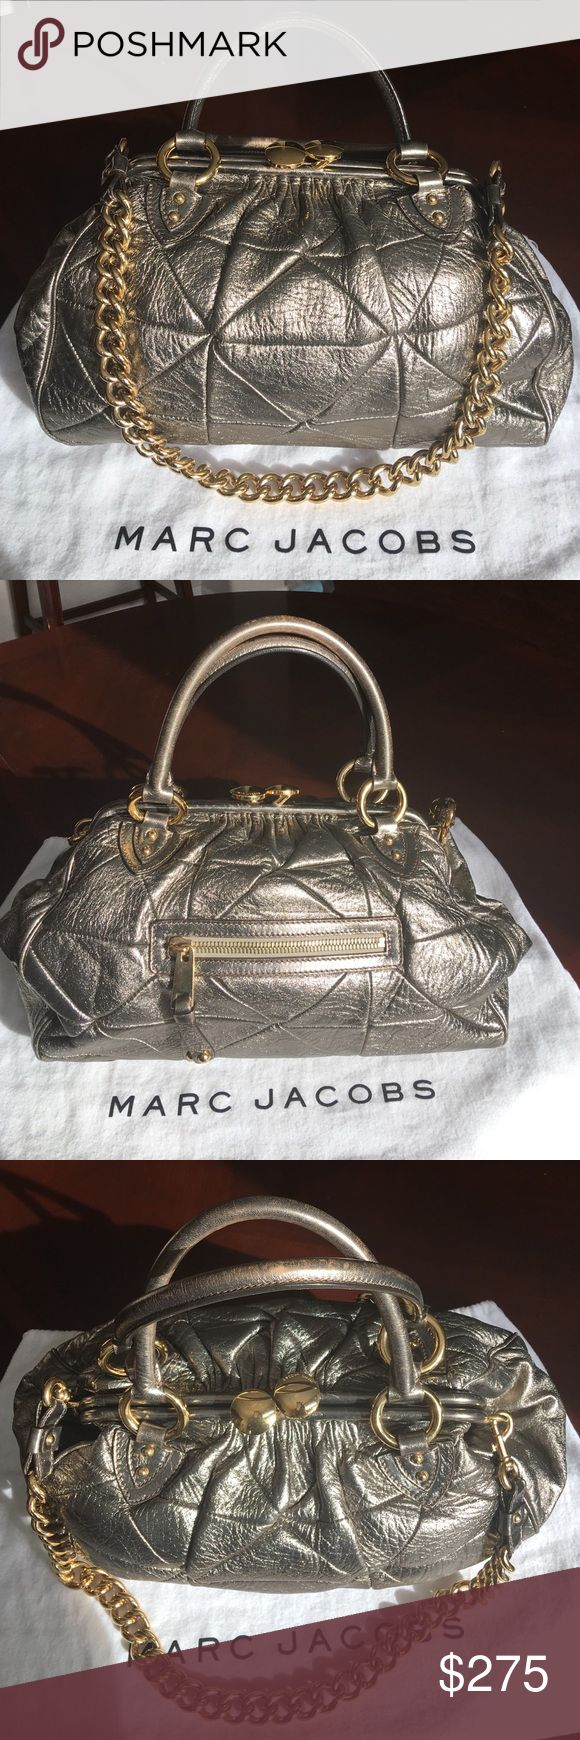 "HP! 1/28MARC JACOBS Patchwork Stam Bag EUC! This is an authentic Marc Jacobs Patchwork Stam bag!  I was on a search for silver/pewter one and this beauty arrived a gorgeous golden color. I would keep her but I have a great gold bag gifted to me by my daughter. Great overall condition: wear on the handles (pic#2) and tiny spot inside (#3). 14""x10""x5"", kiss-lock, removable shoulder chain. Stams are an ultimate bag for chic, amazing style! From jeans & T-shirts to glam, anything goes with this…"